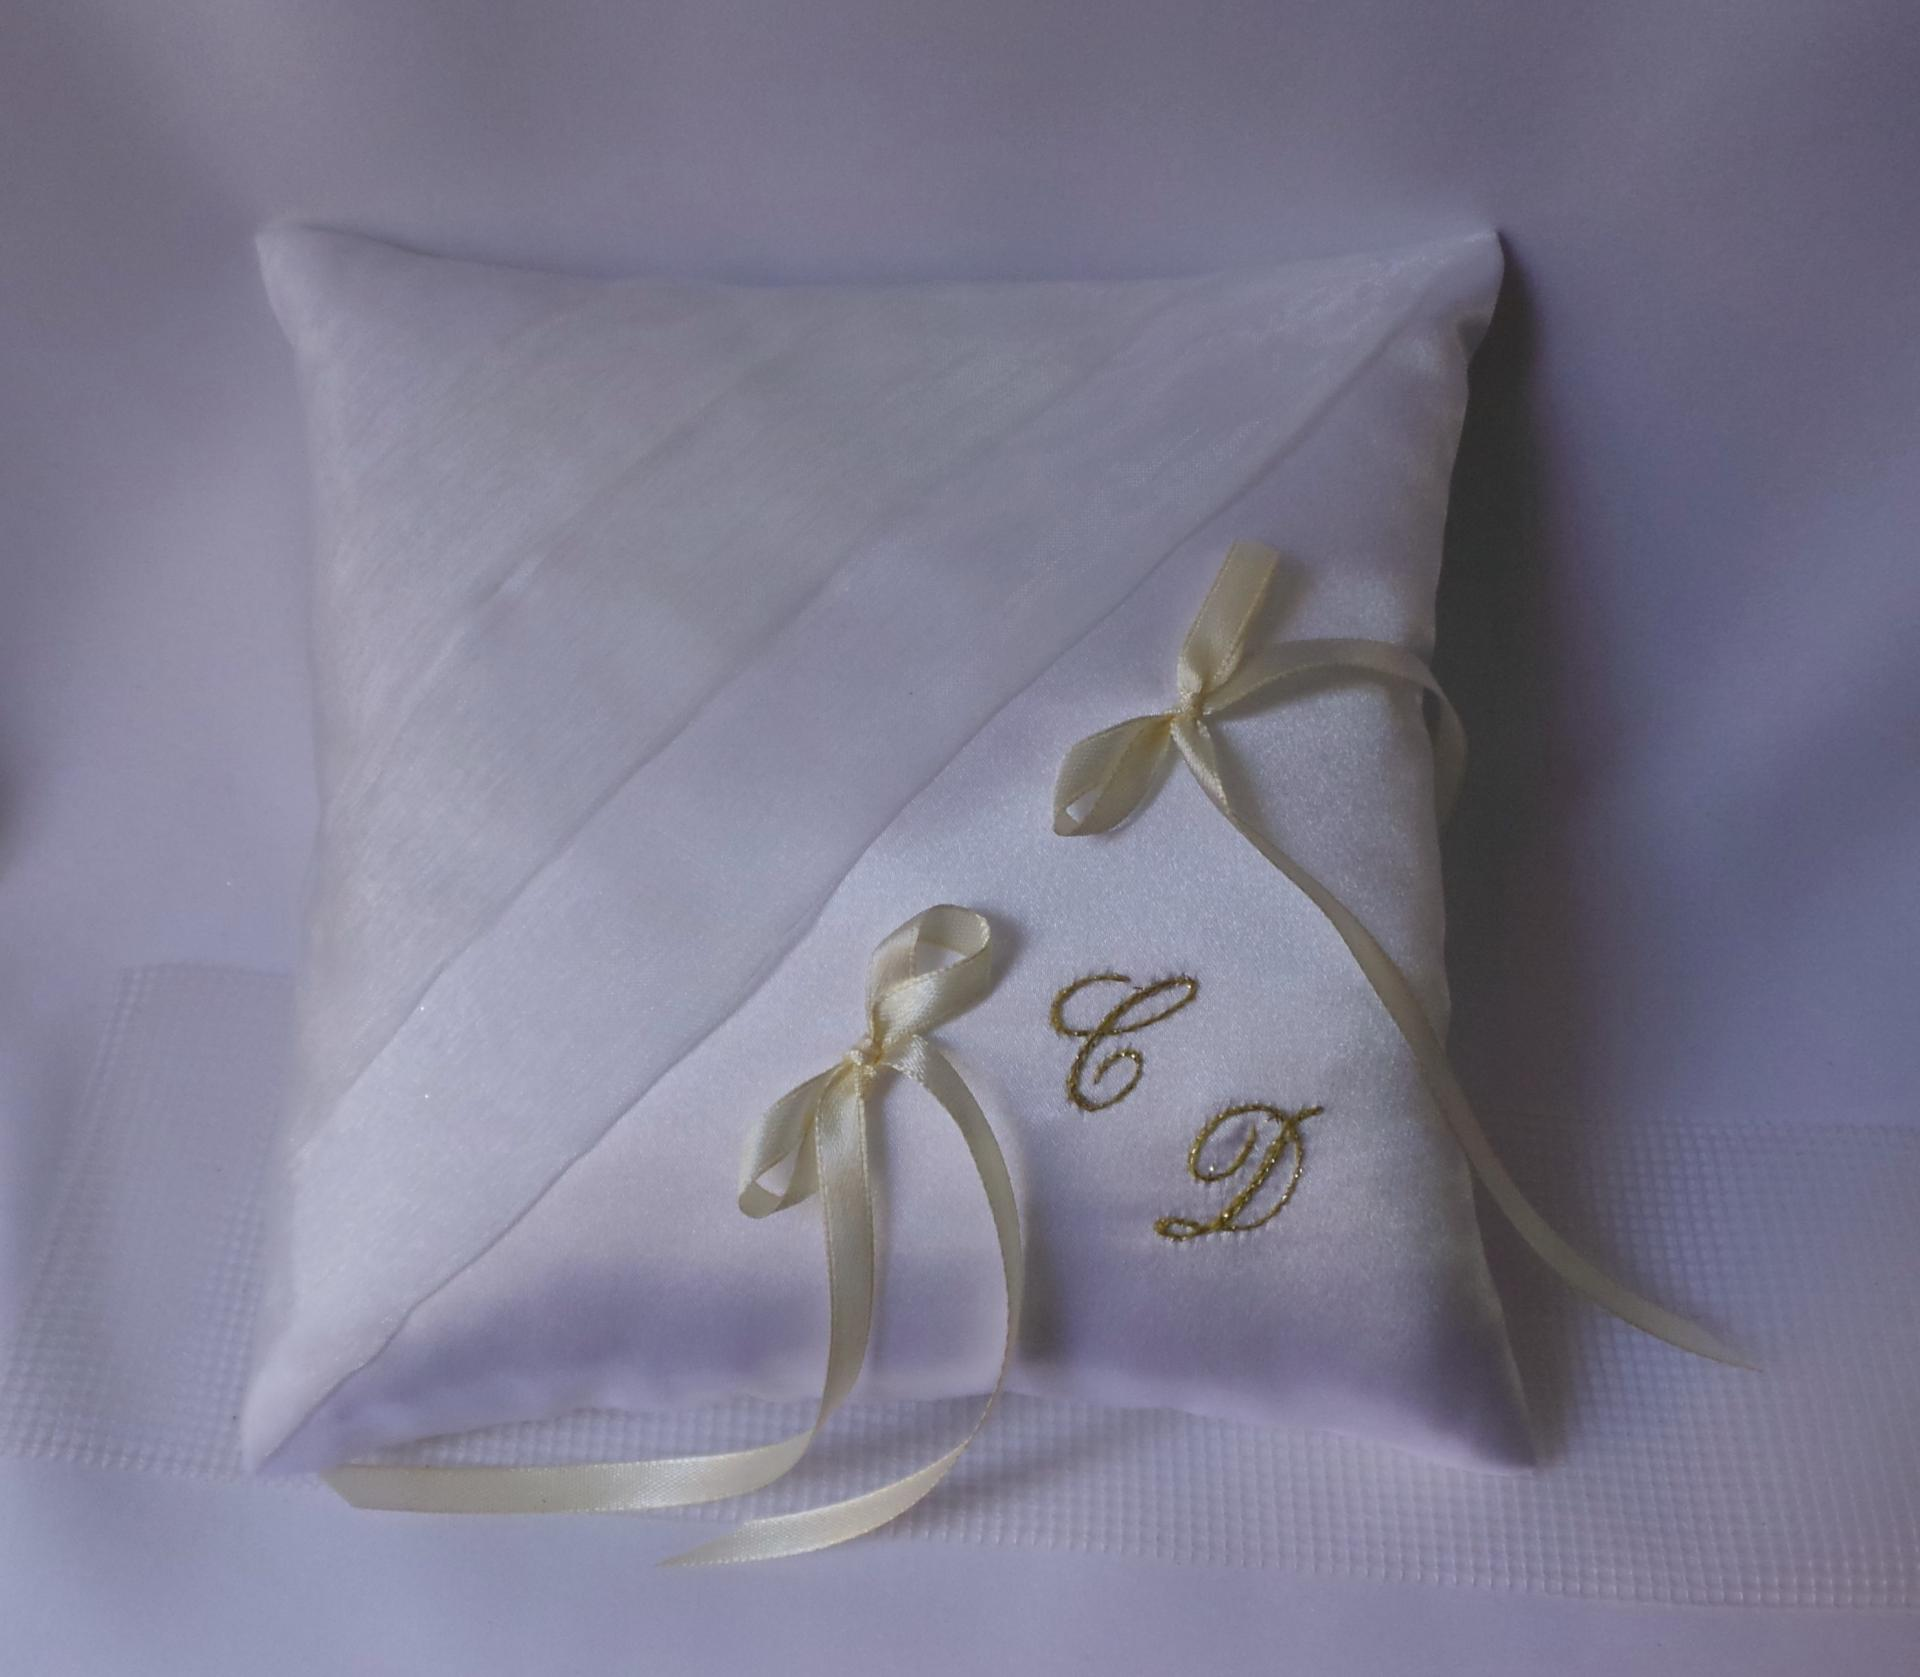 Coussin alliances chic blanc personnalise or